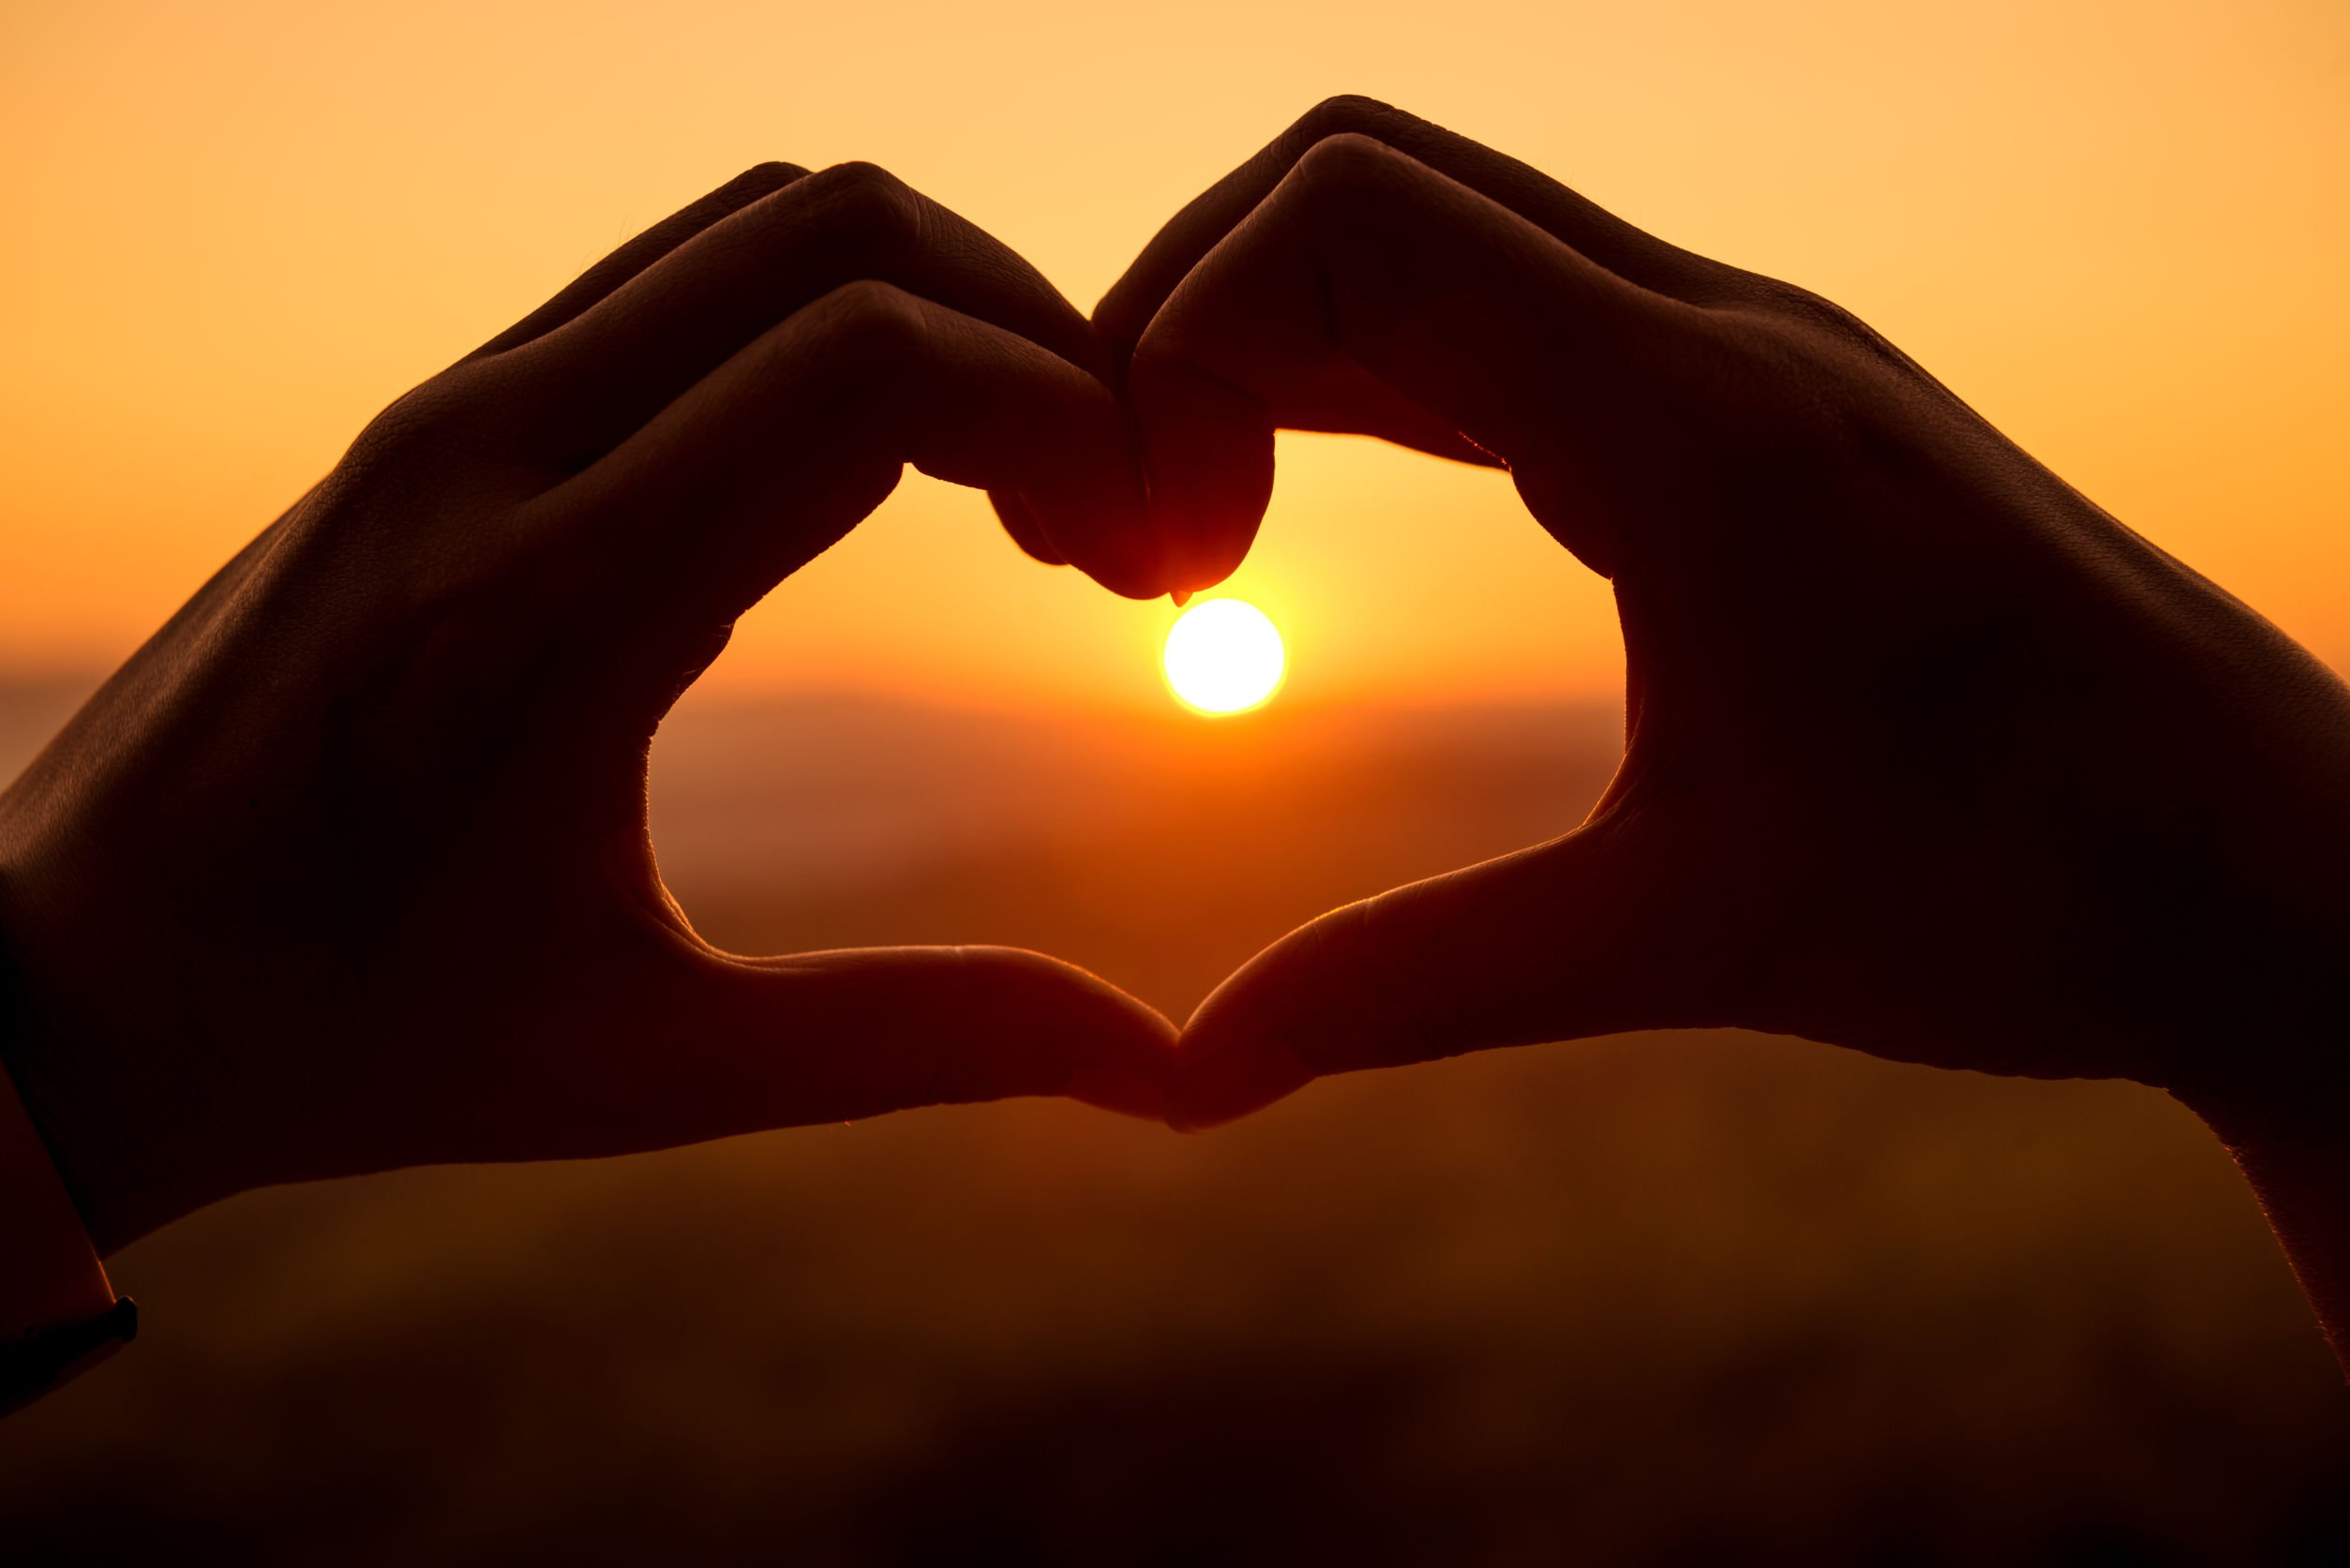 Heart Love Sunset Hands Nature Splendor Wallpaper